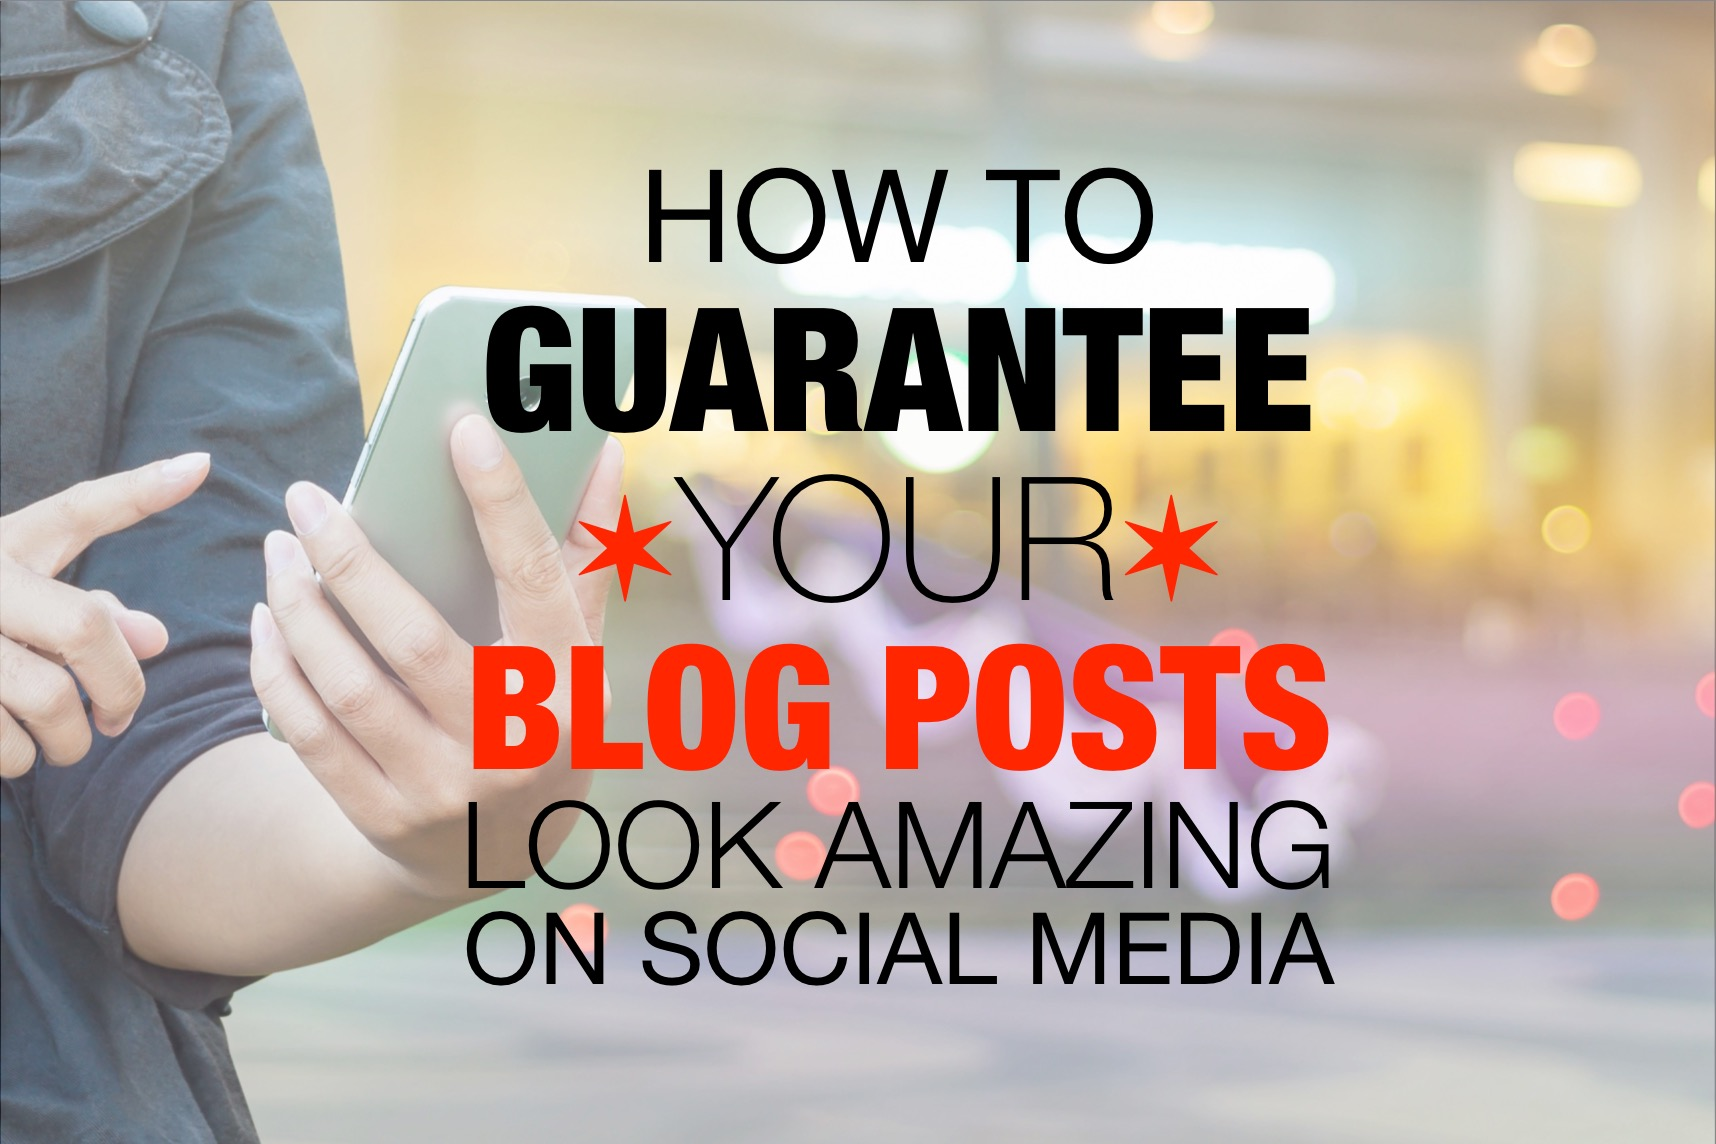 How to Guarantee Your Blog Posts Look Amazing on Social Media